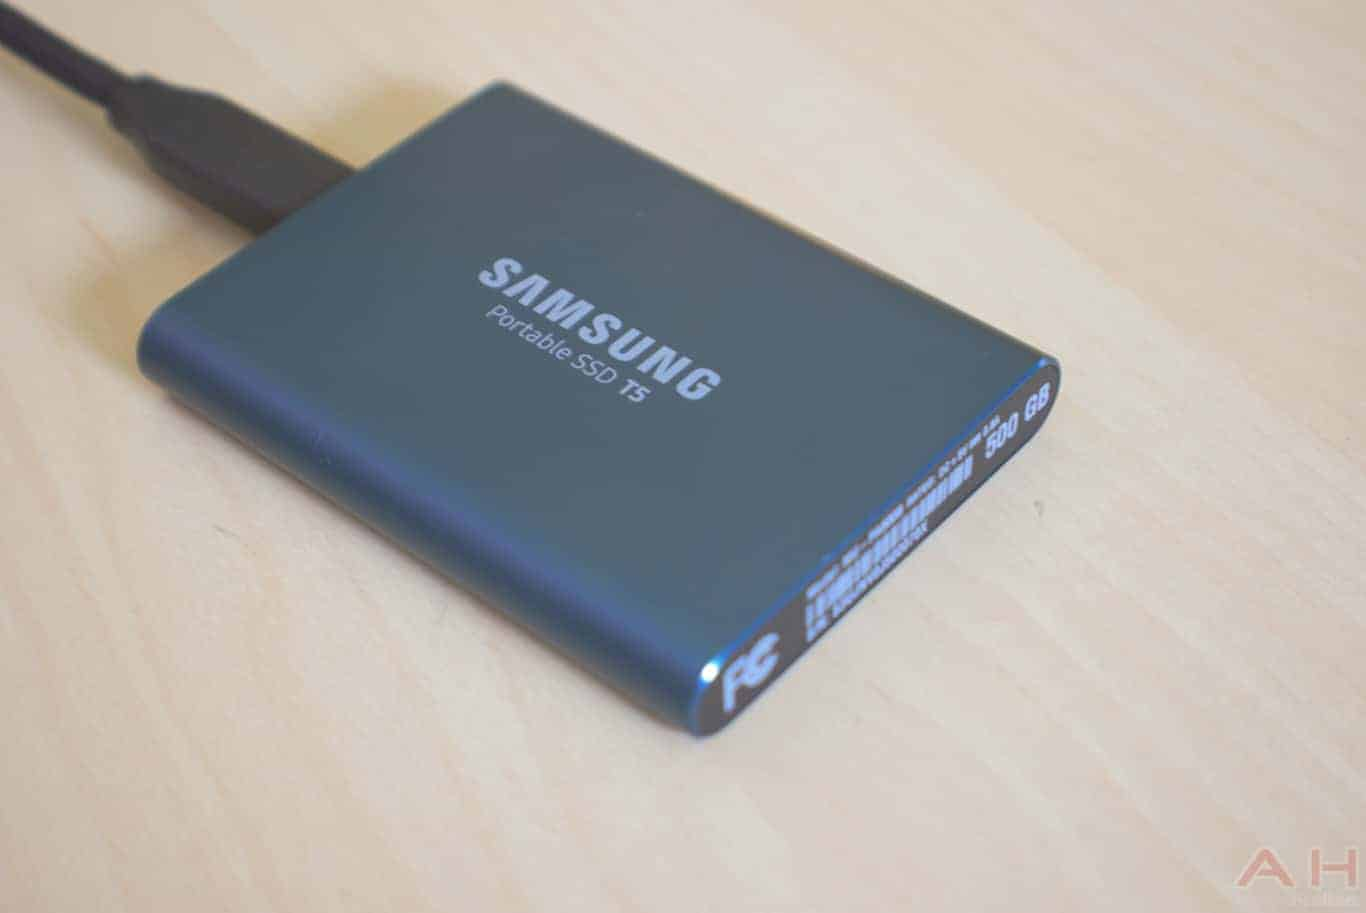 Samsung T5 SSD Review AM AH 0042